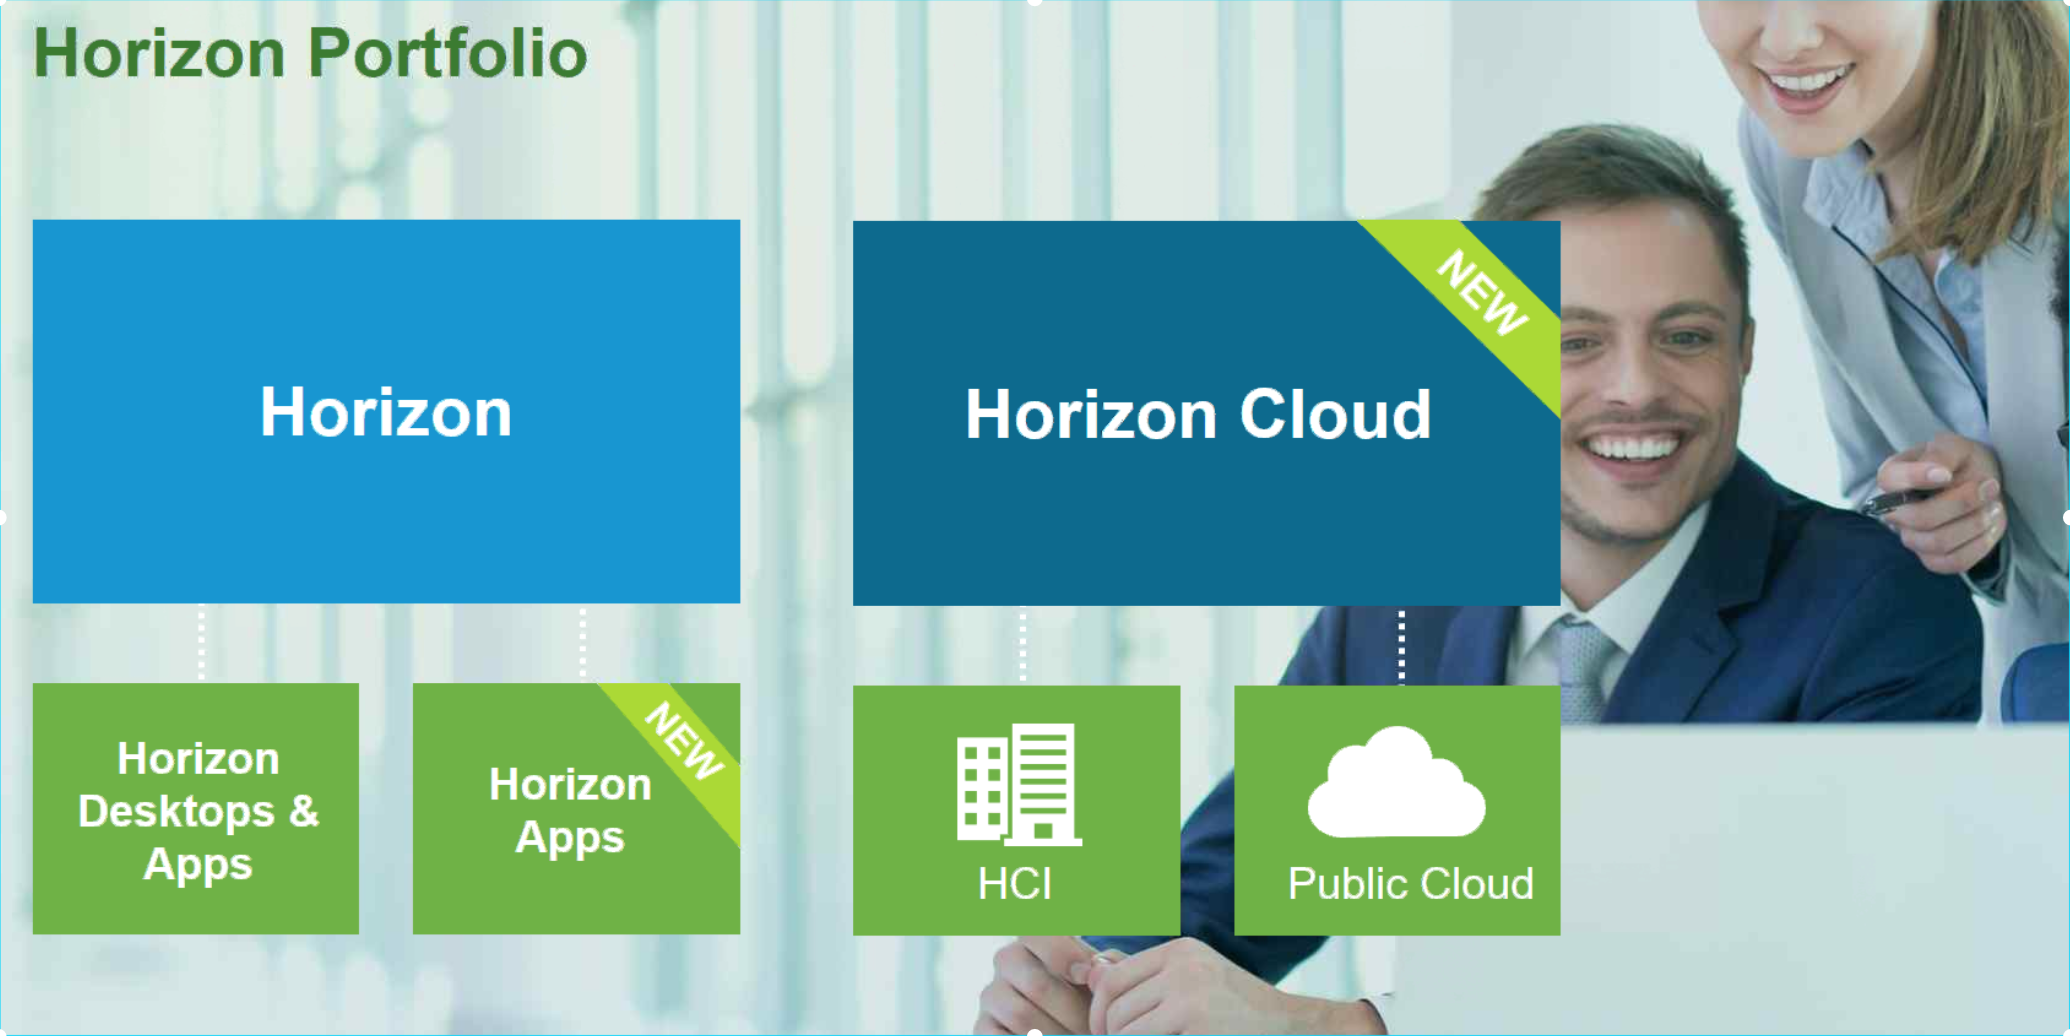 VMware horizon 7.1 introduces JIT for Apps, vGPU for instant clones and more